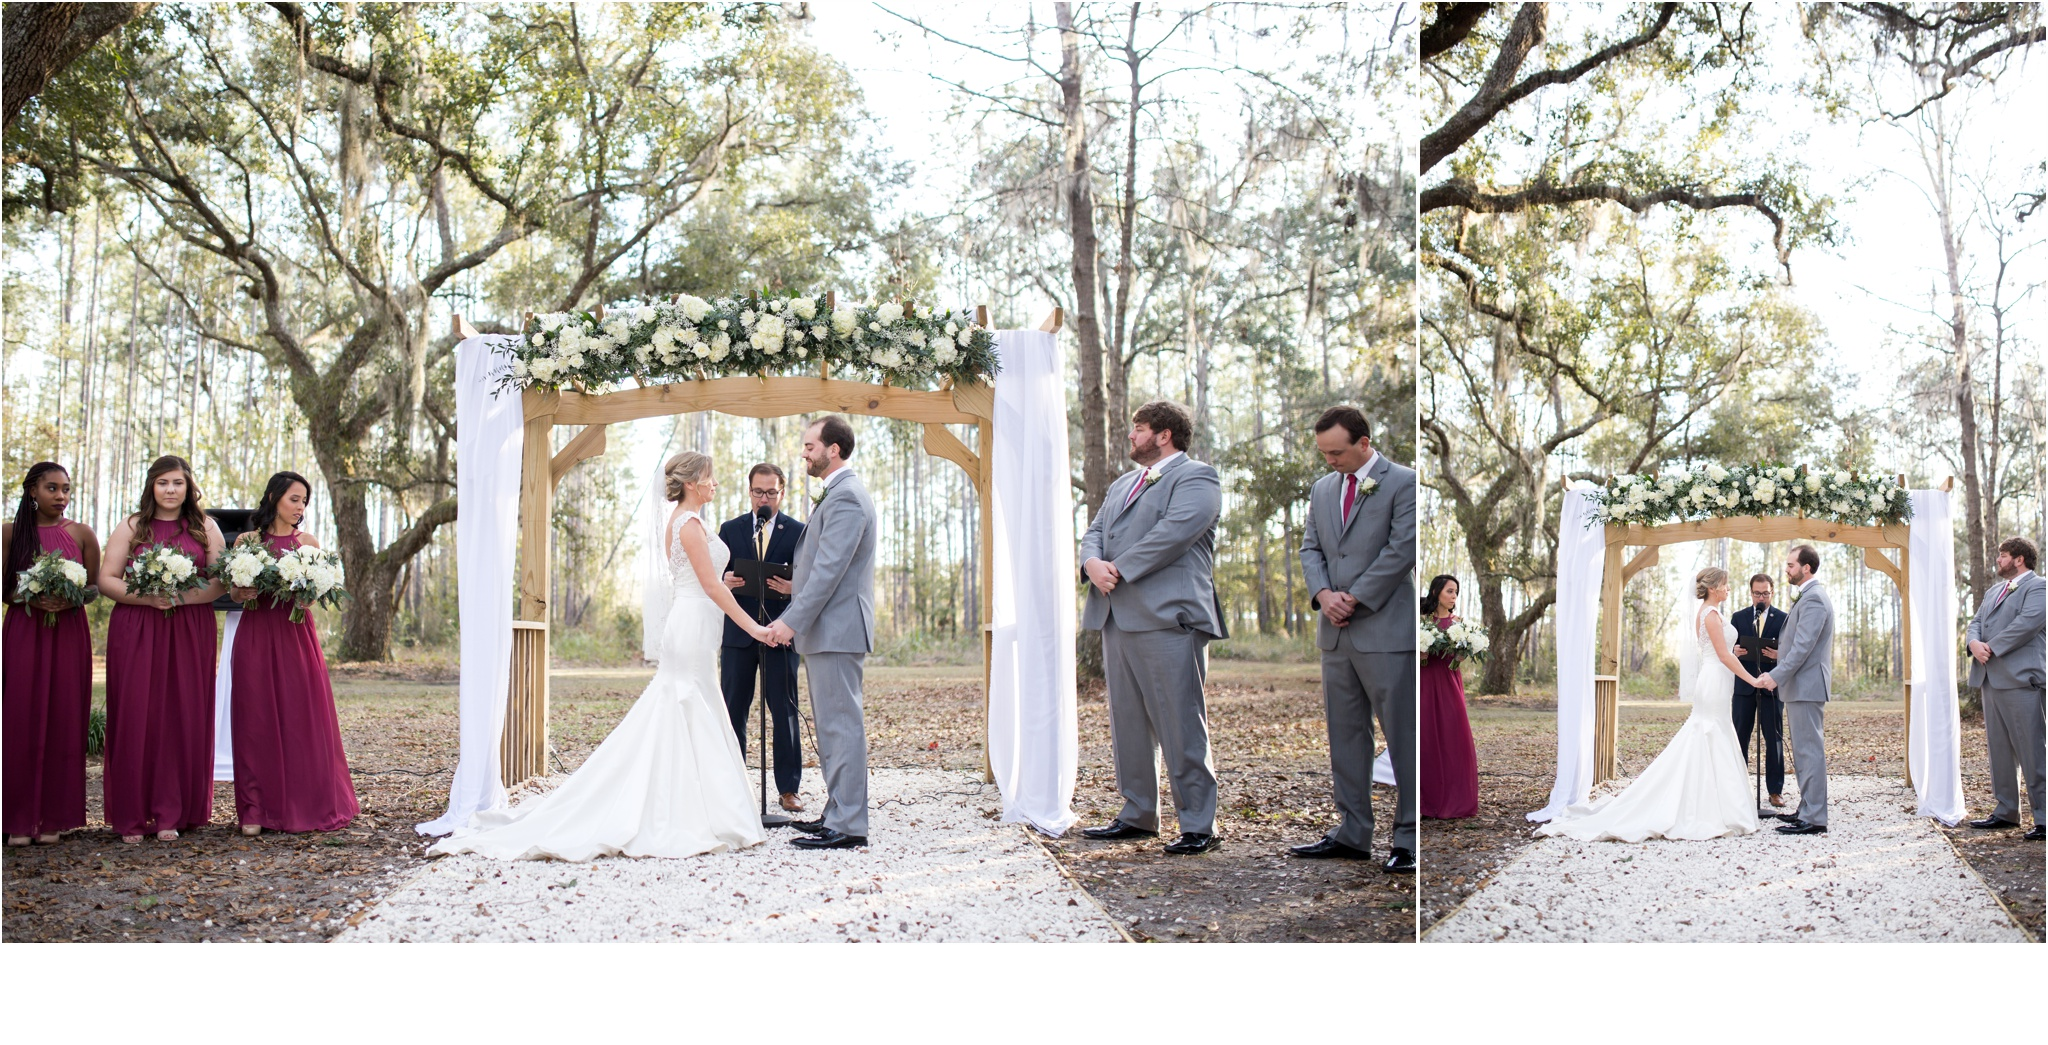 Rainey_Gregg_Photography_St._Simons_Island_Georgia_California_Wedding_Portrait_Photography_0528.jpg